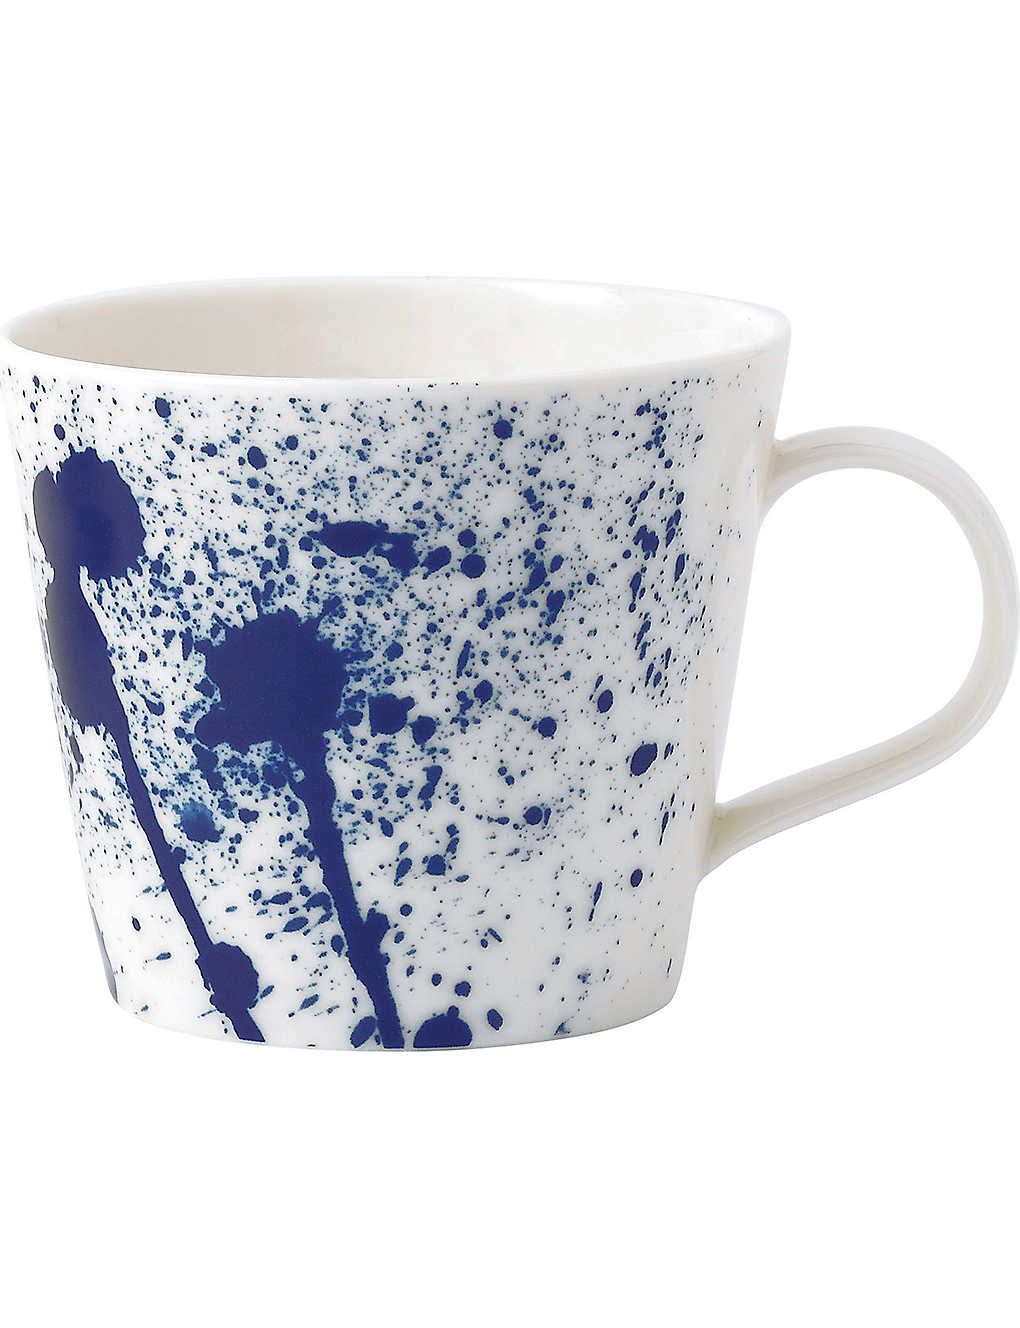 ROYAL DOULTON: Pacific splash mug 23cm